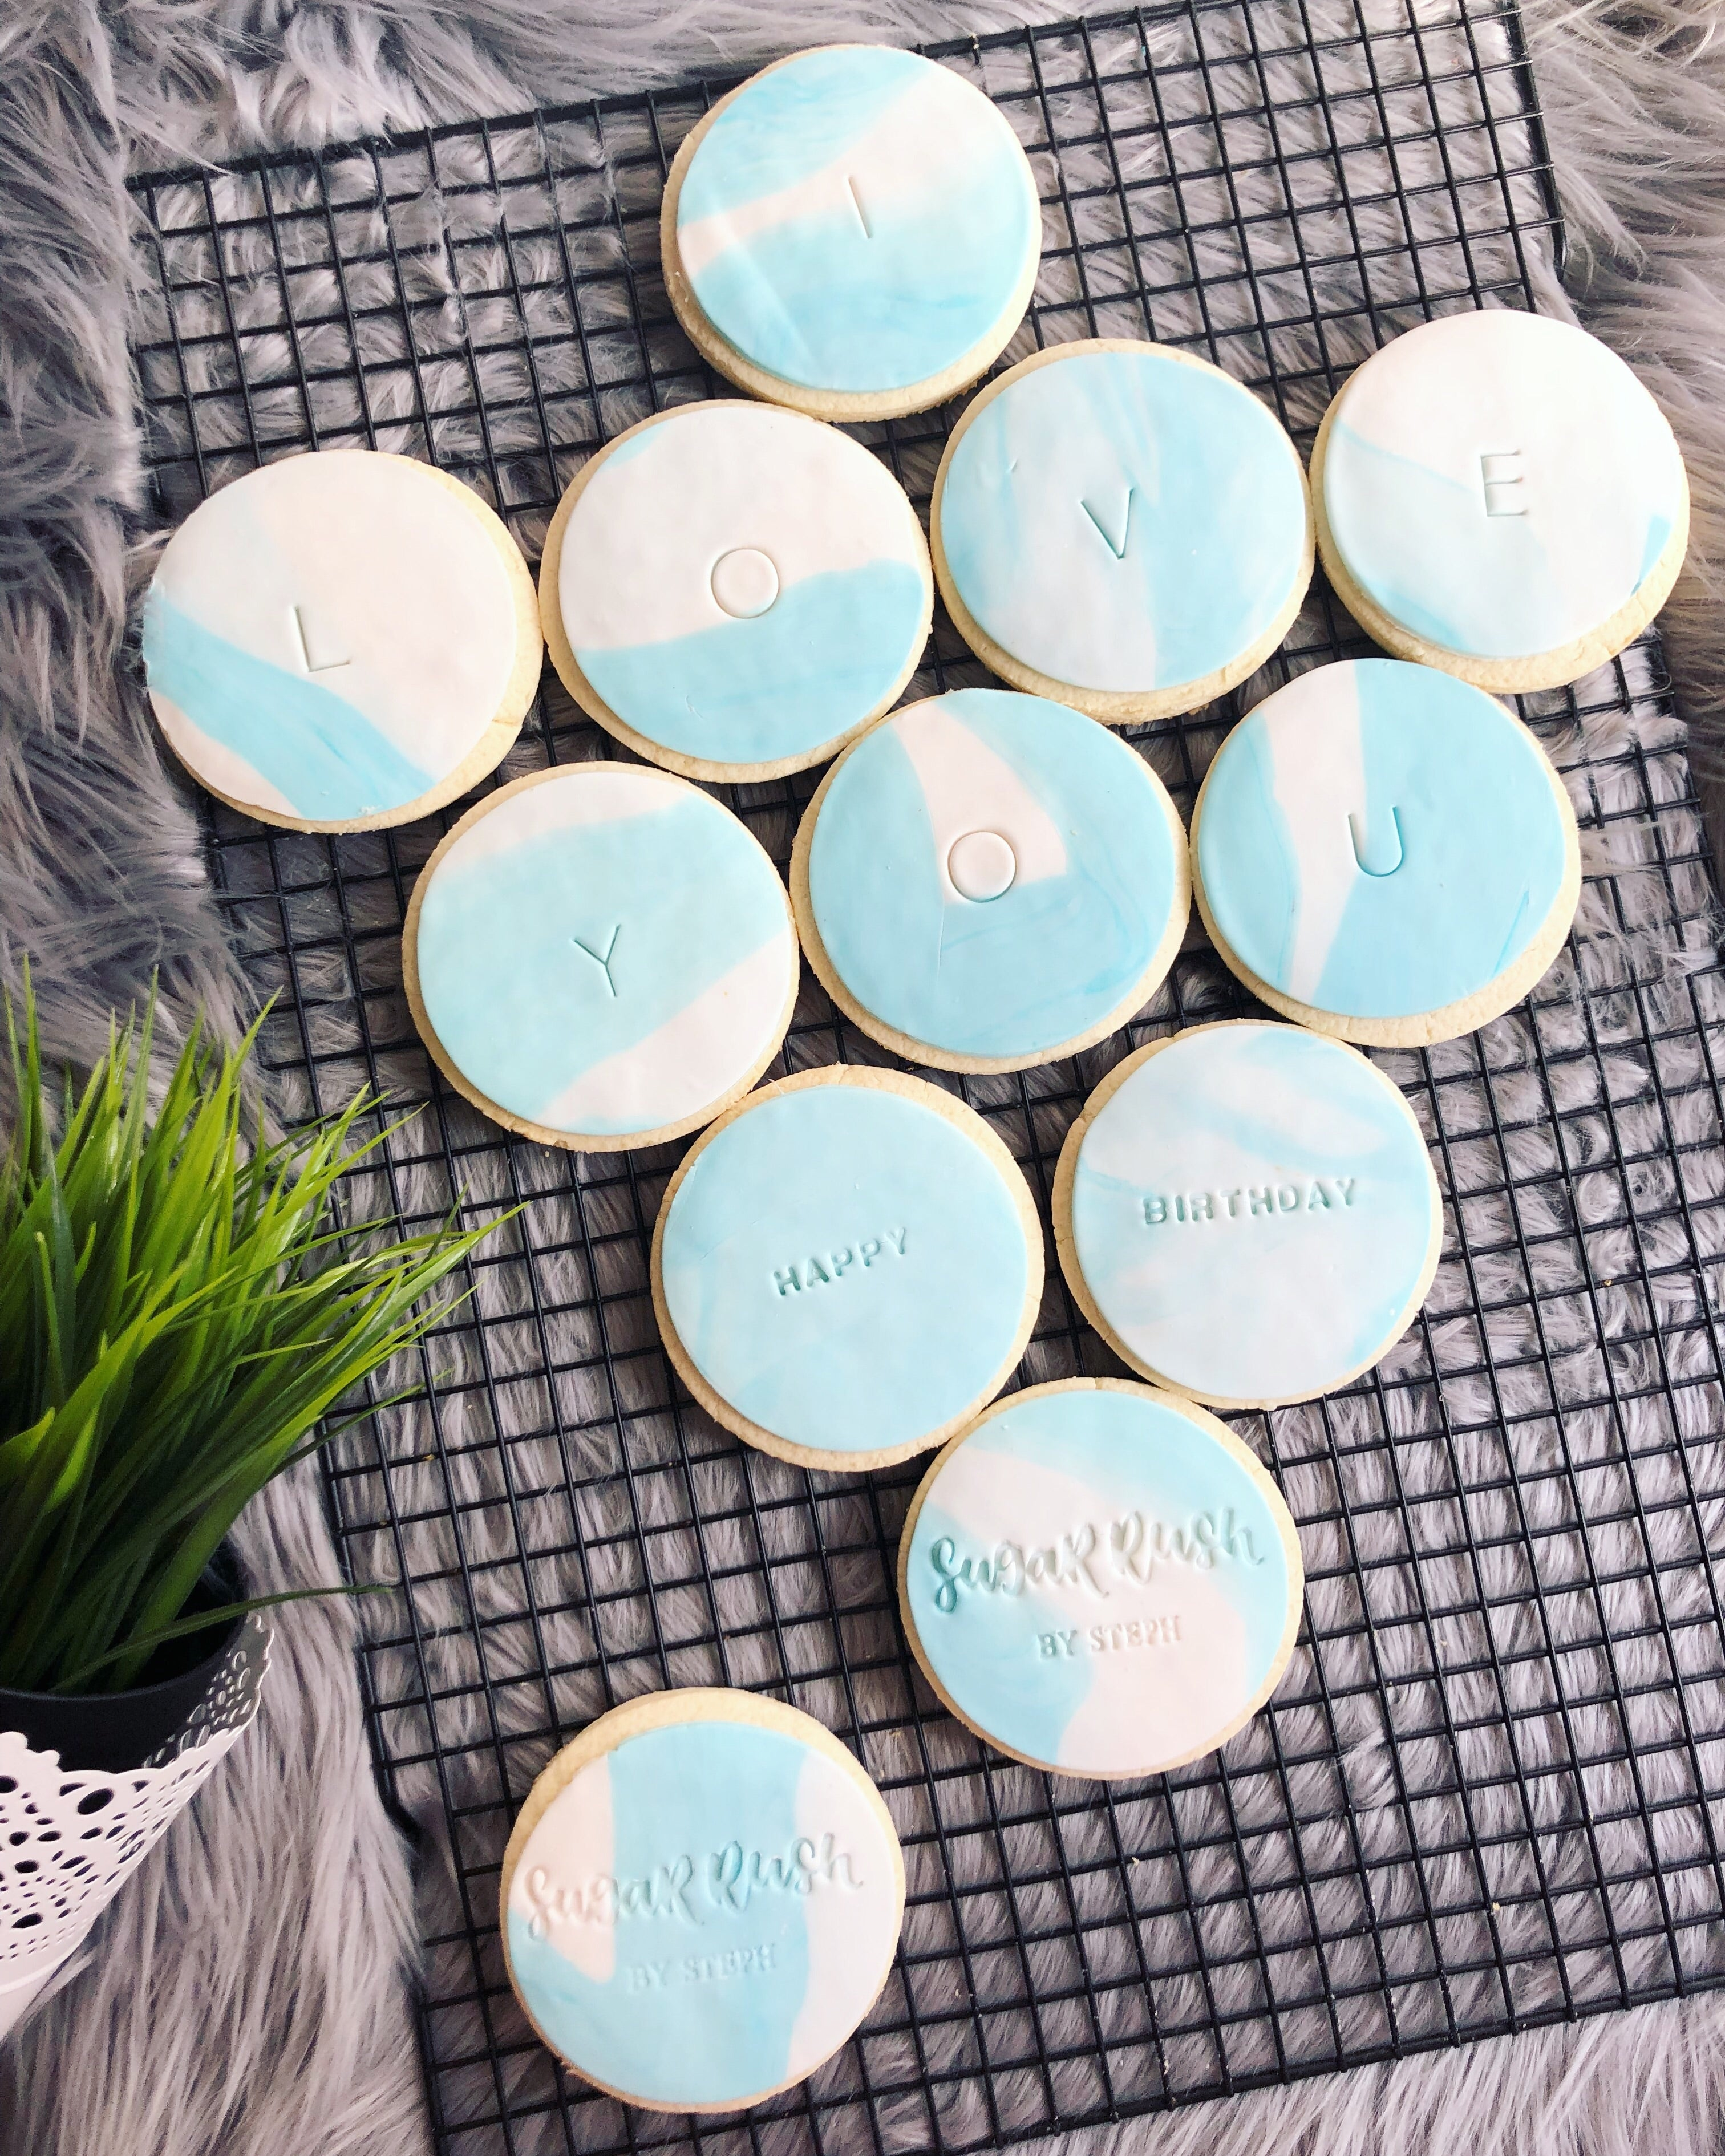 Gluten-Free | Personalised cookies - Sugar Rush by Steph